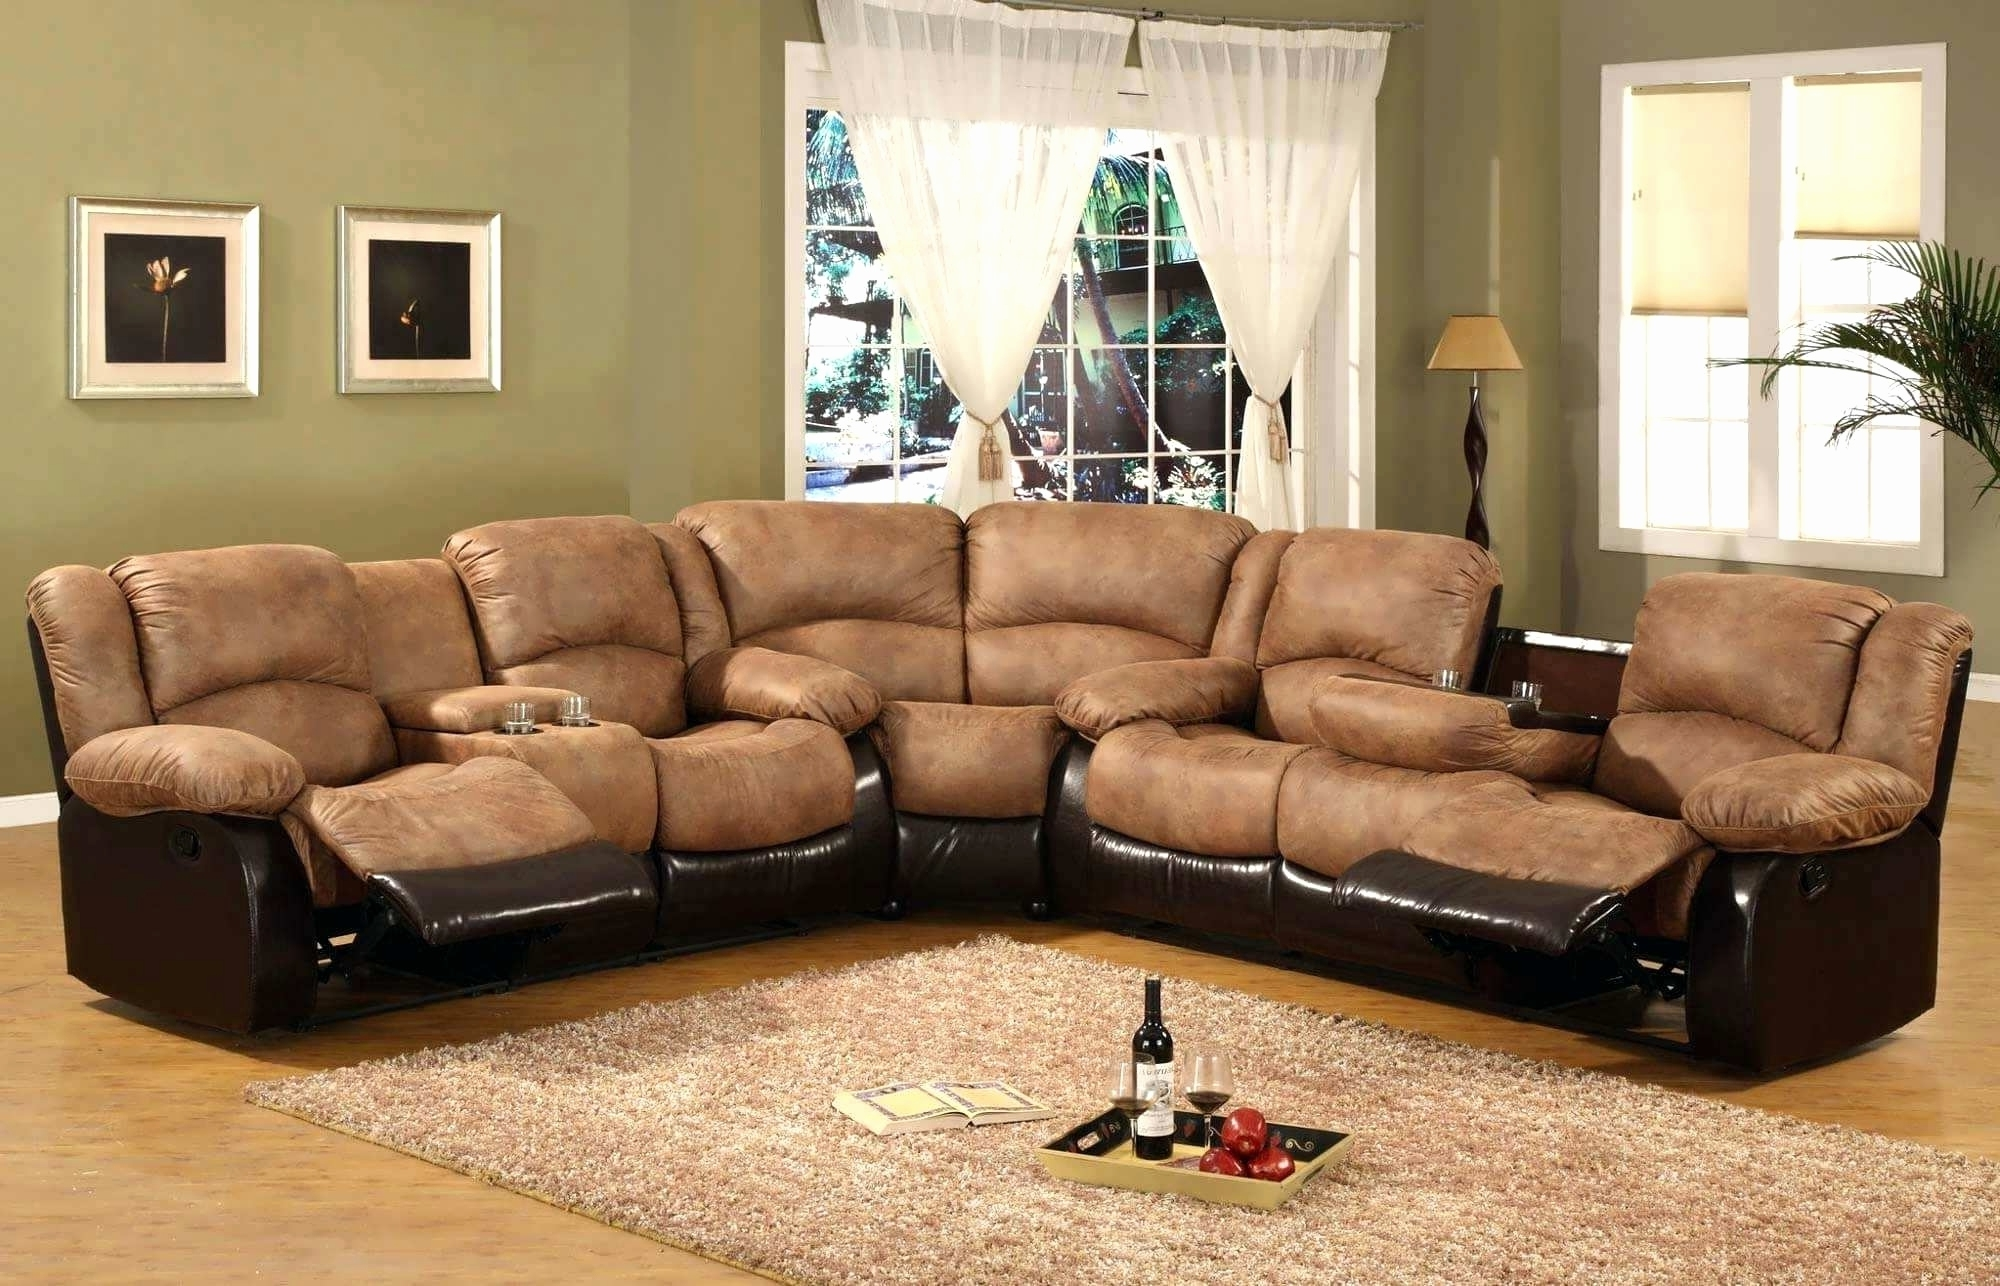 Sectional Sofas With Recliners Leather With Regard To 2018 Lovely Microfiber Sectional Sofa With Chaise And Recliner (View 16 of 20)